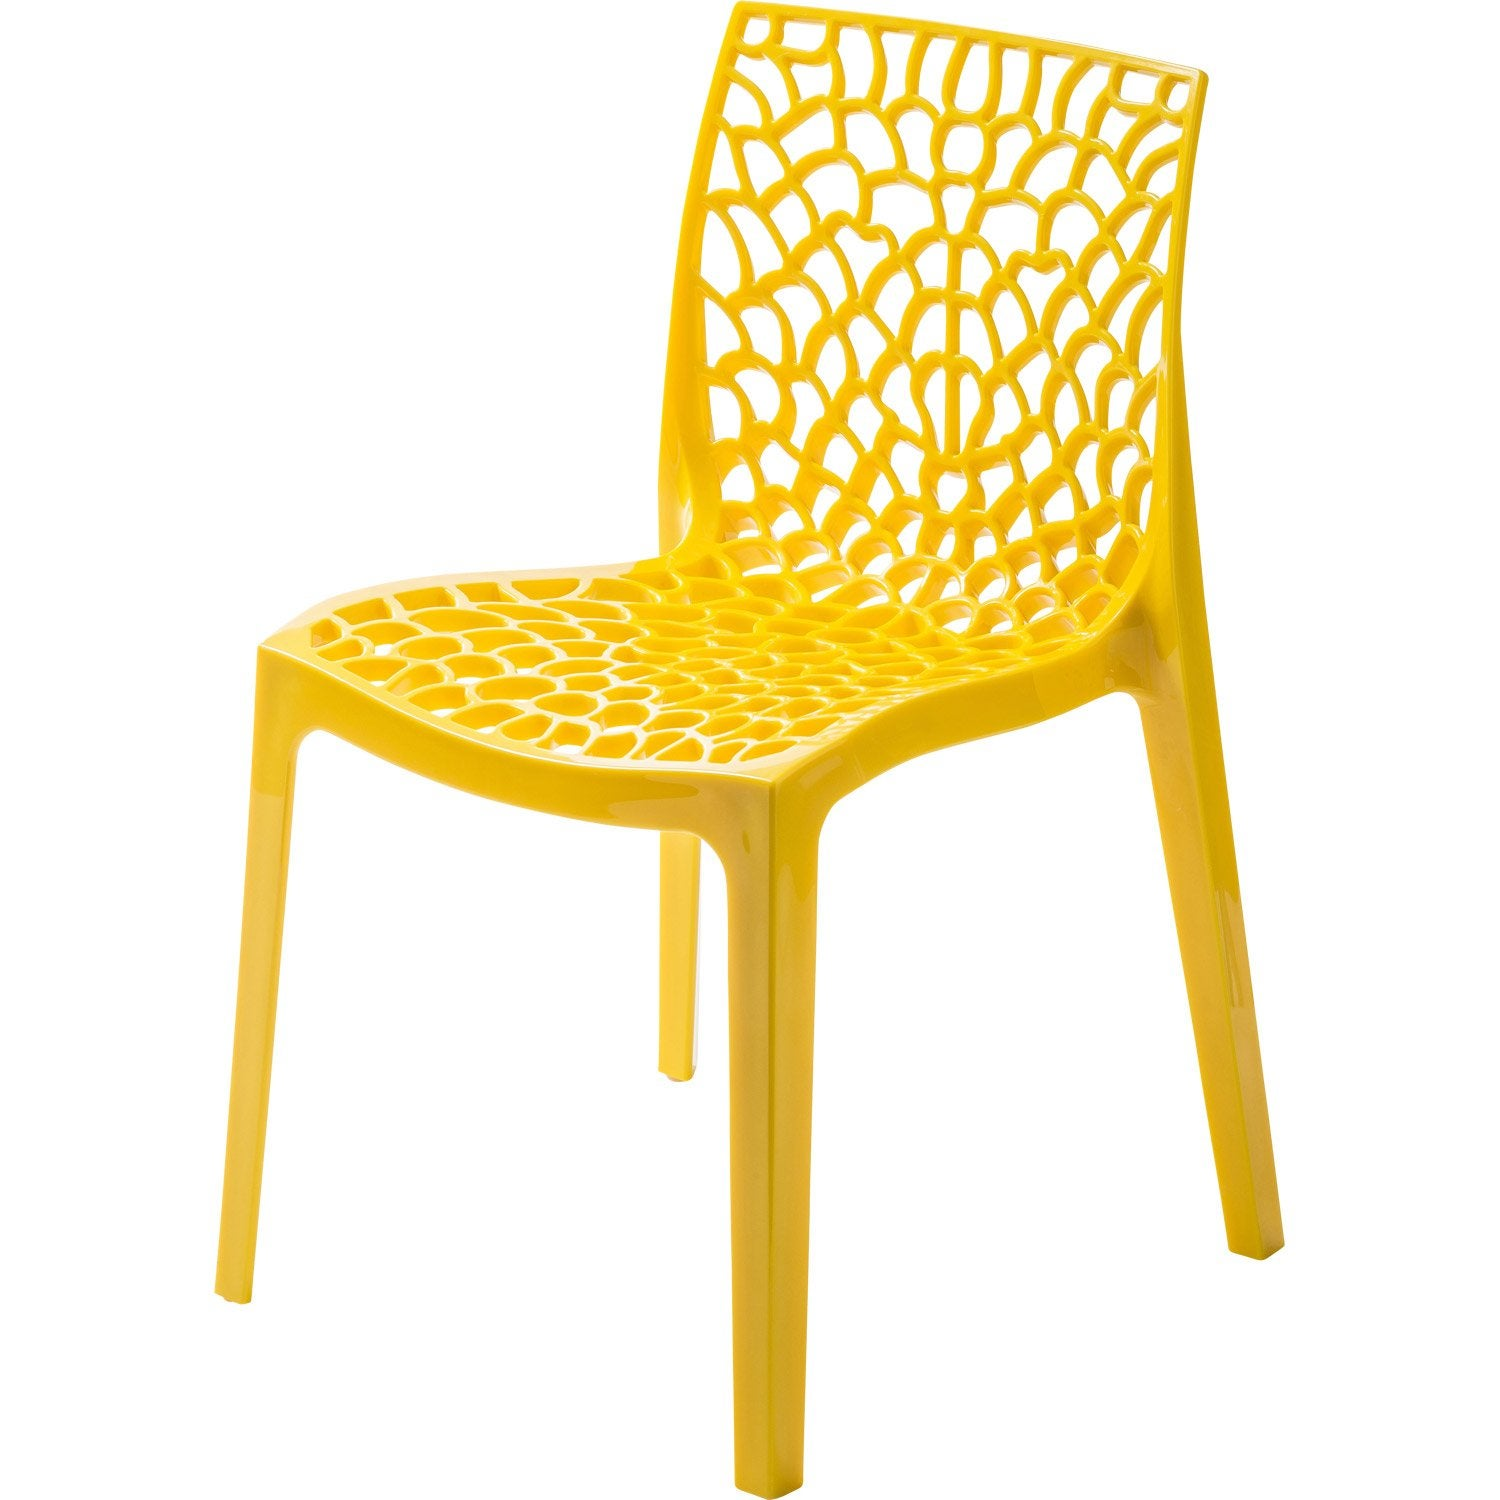 Chaise de jardin en r sine grafik jaune leroy merlin for Chaise longue en resine